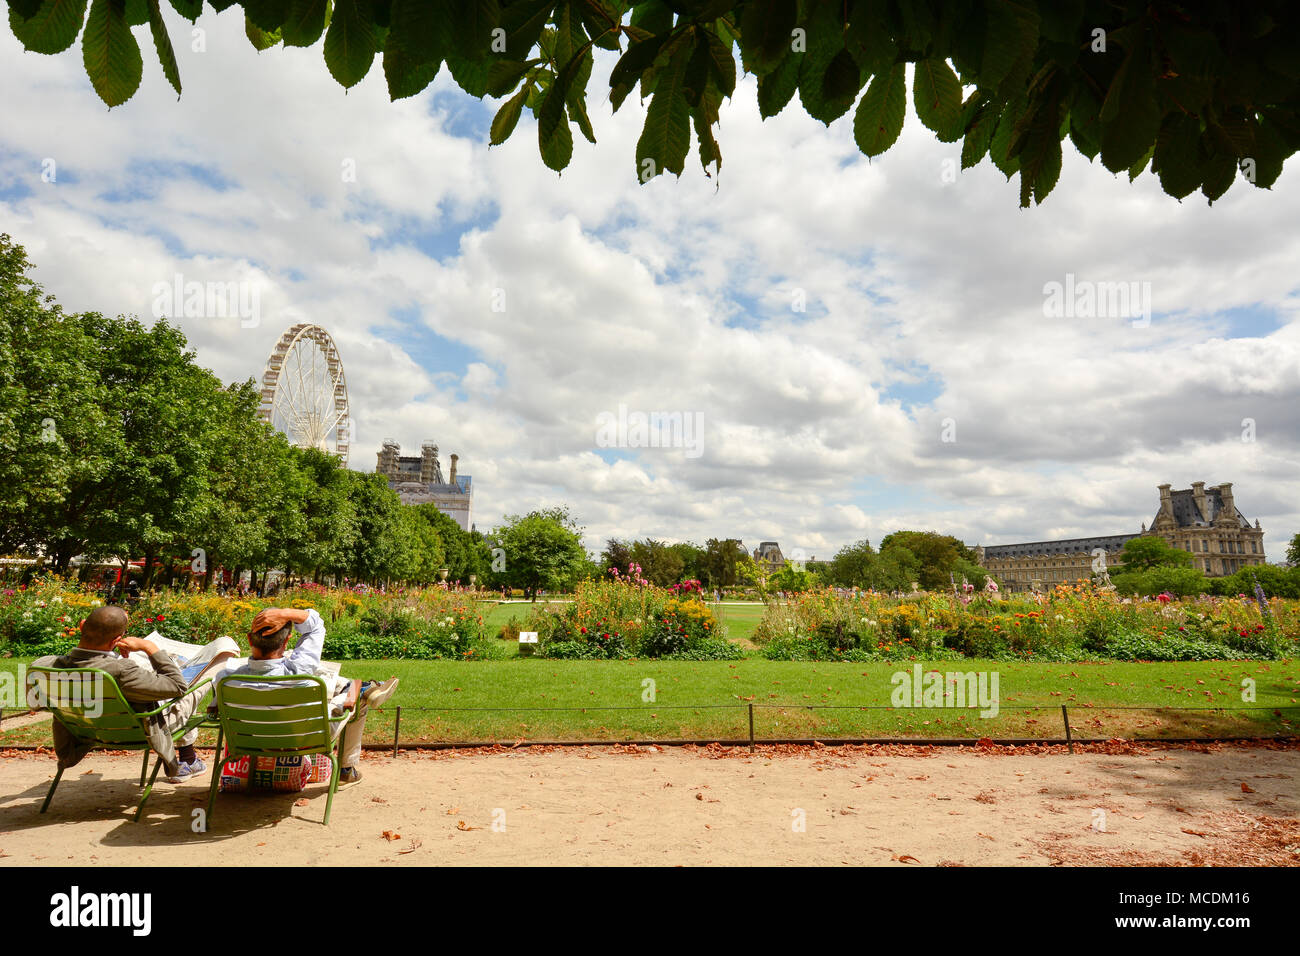 A couple reading the newspaper at the Tuellieries gardens of the Louvre in Paris. - Stock Image